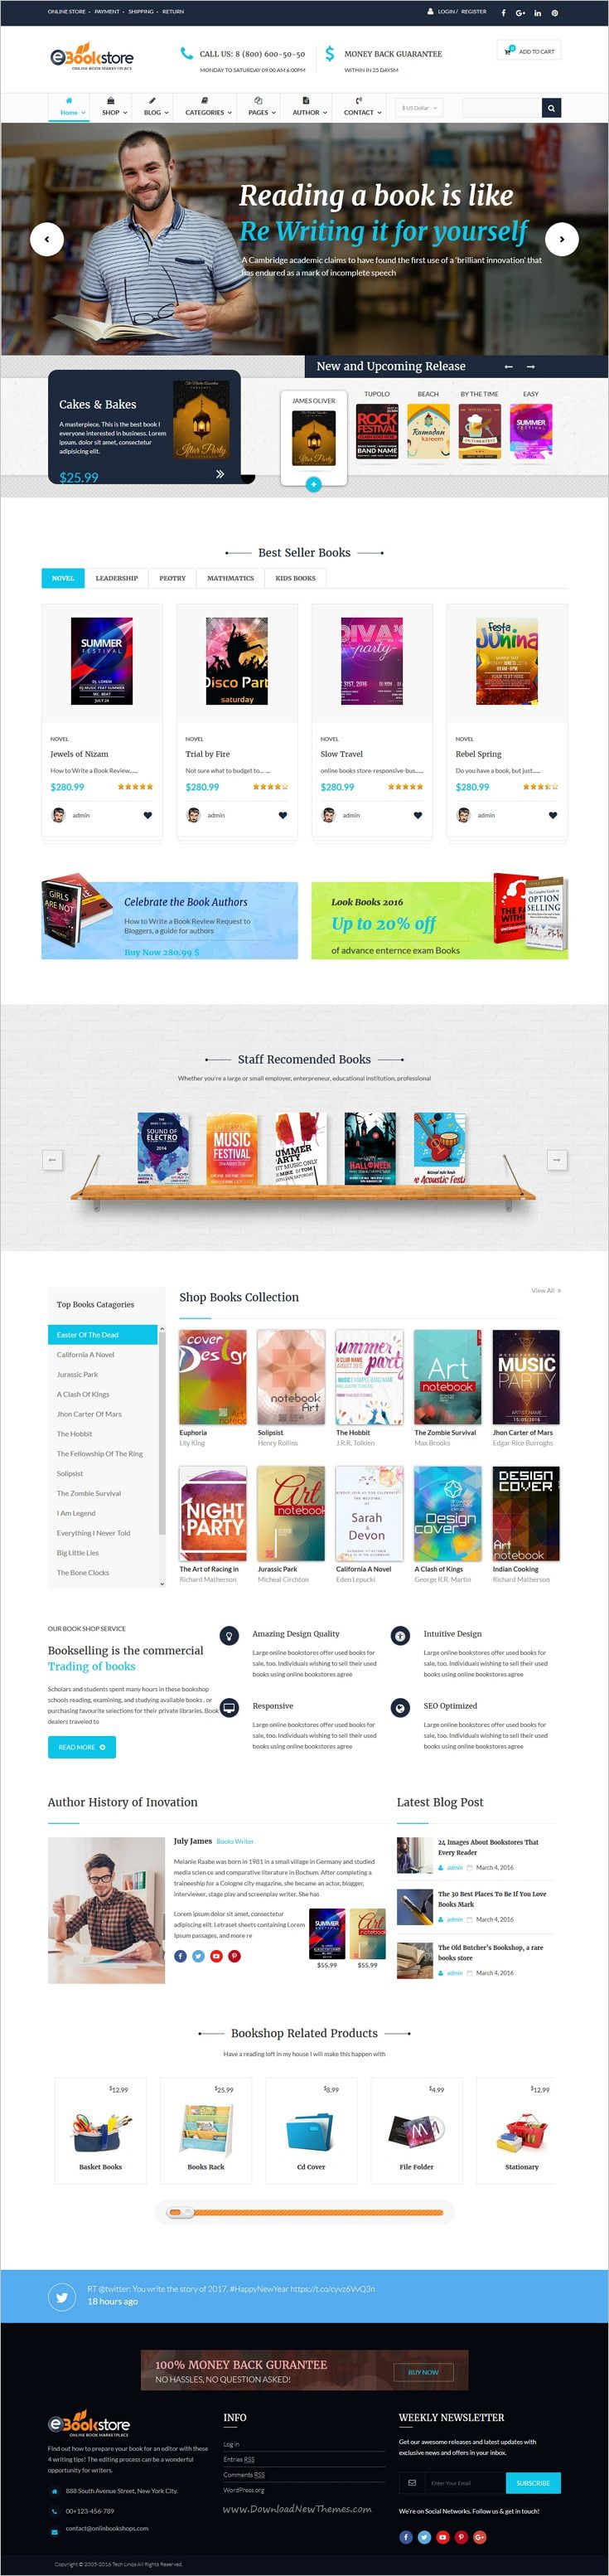 Book store is beautifully design responsive 2in1 #WordPress theme for #bookstore, #publisher, #book author or books library eCommerce website download now➩ https://themeforest.net/item/book-store-wordpress-theme-bookstore-wp/17674516?ref=Datasata